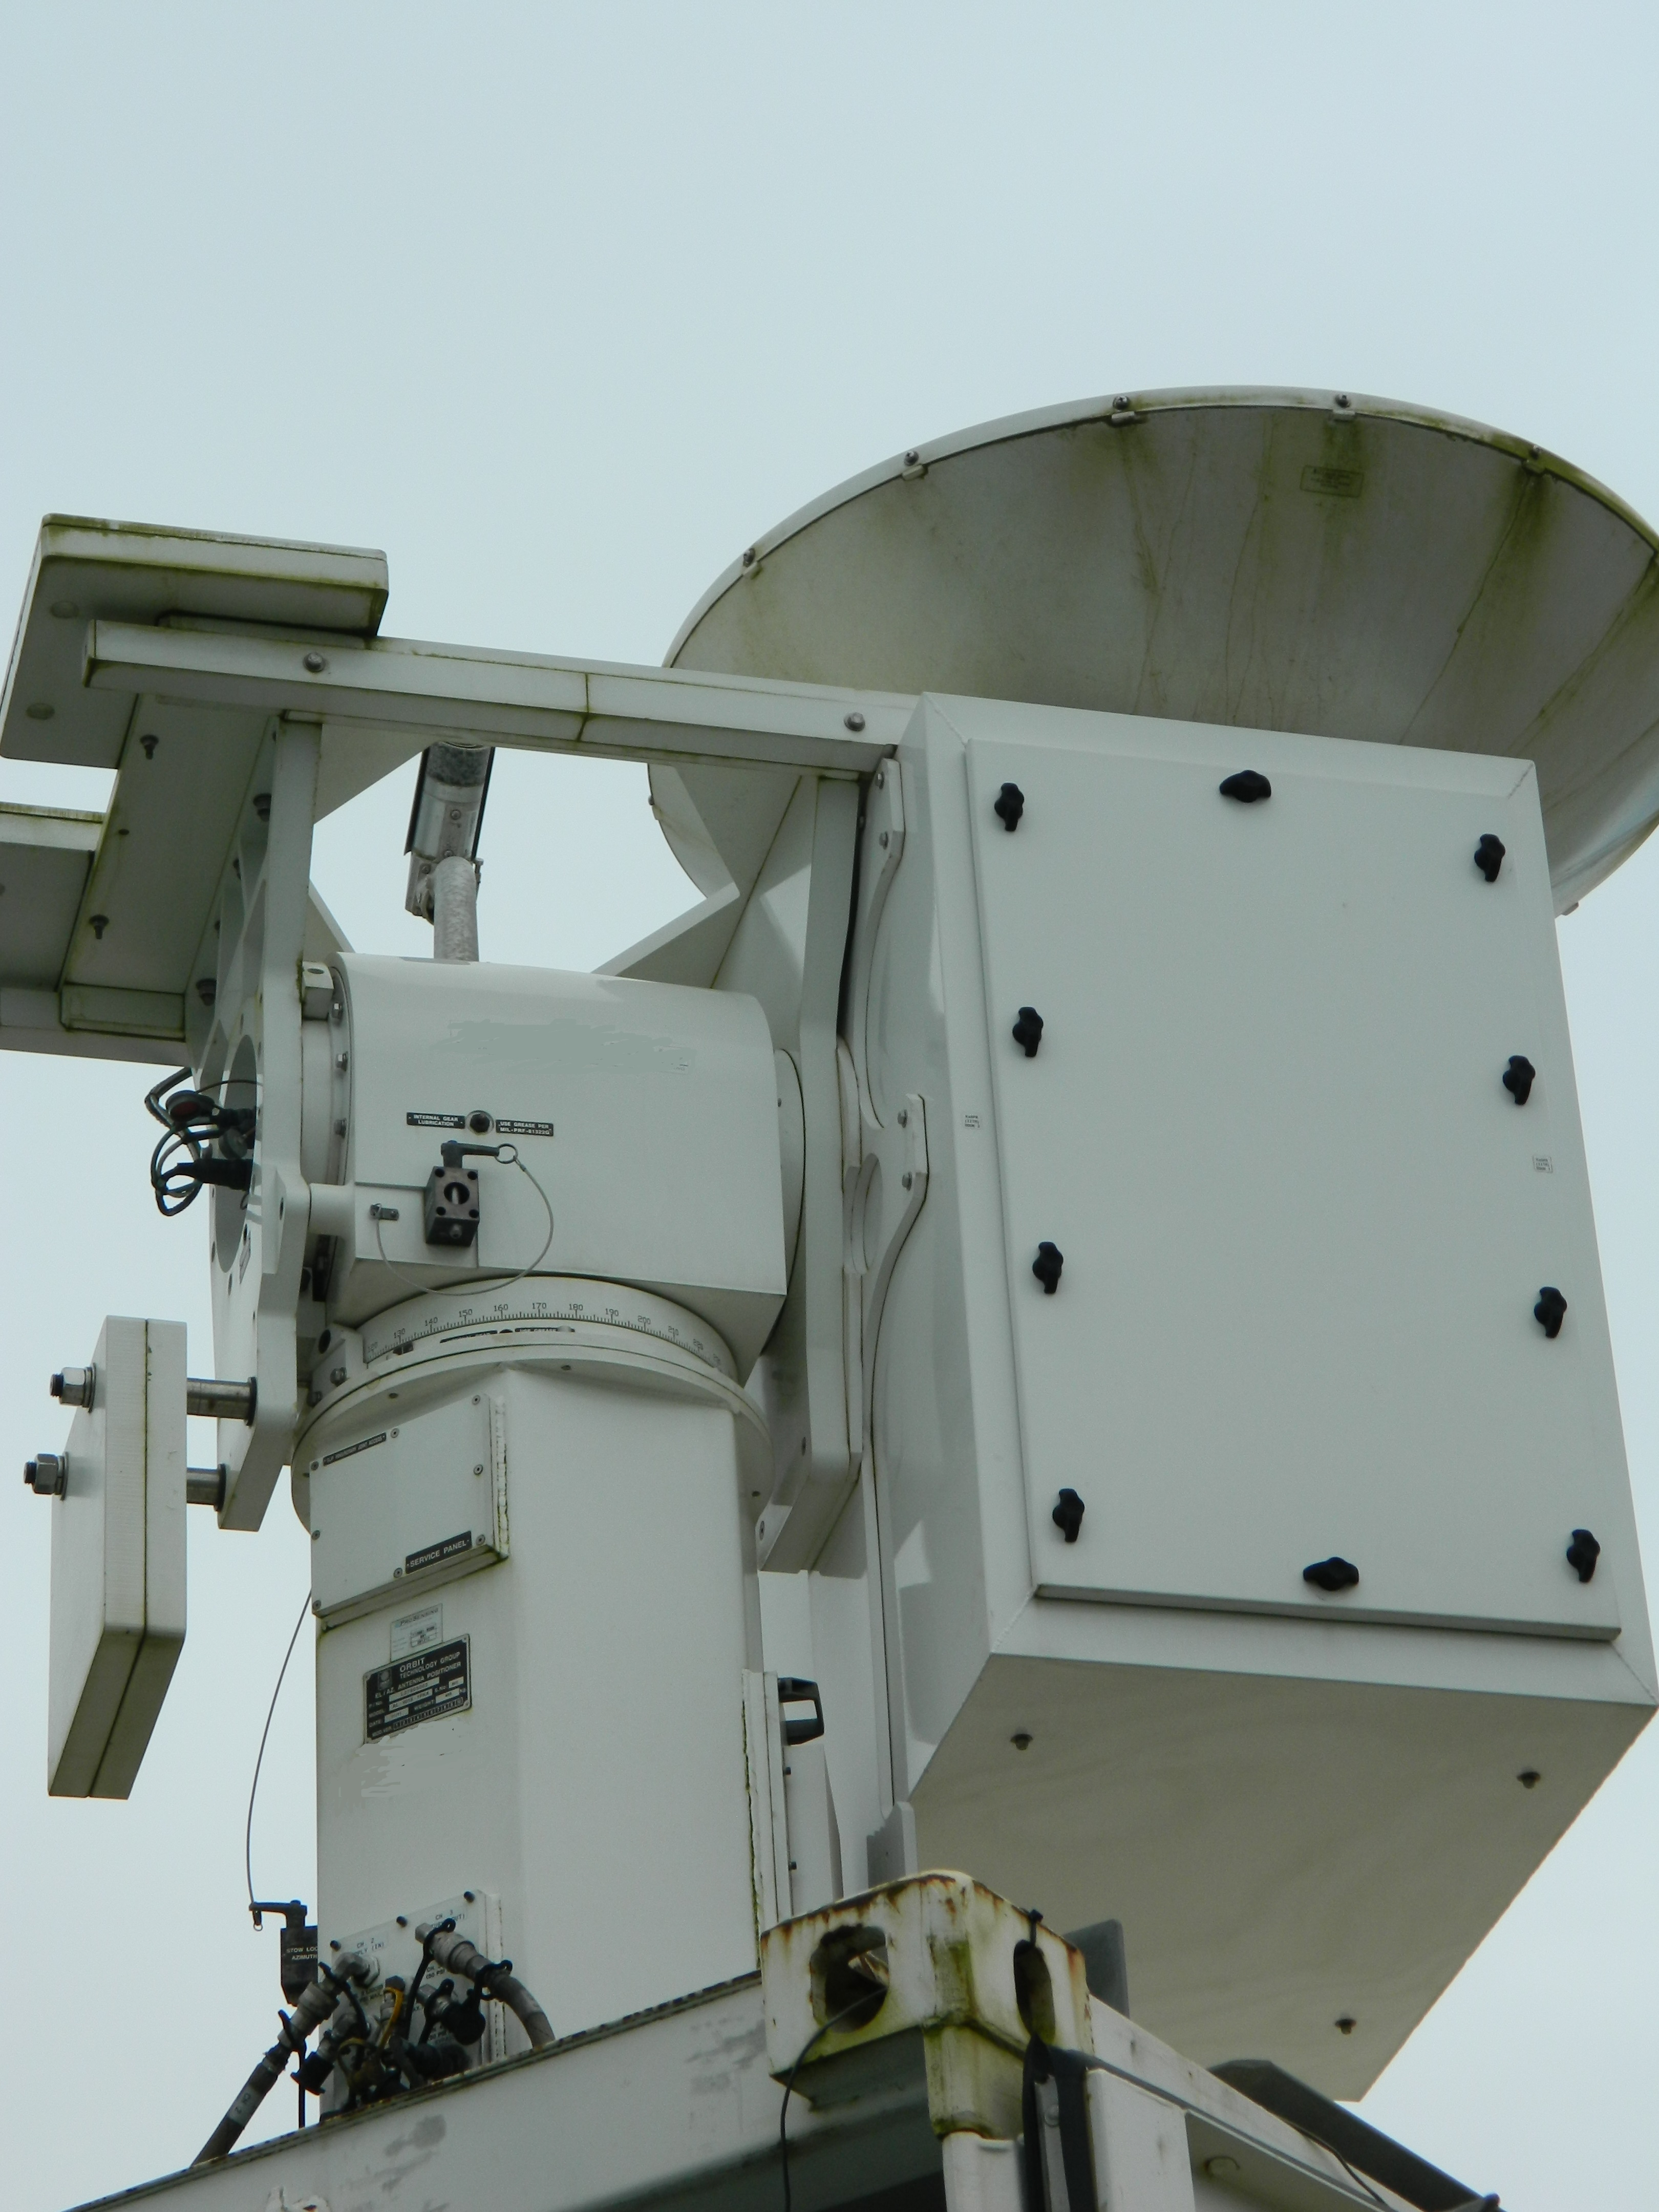 Ka-band cloud radar